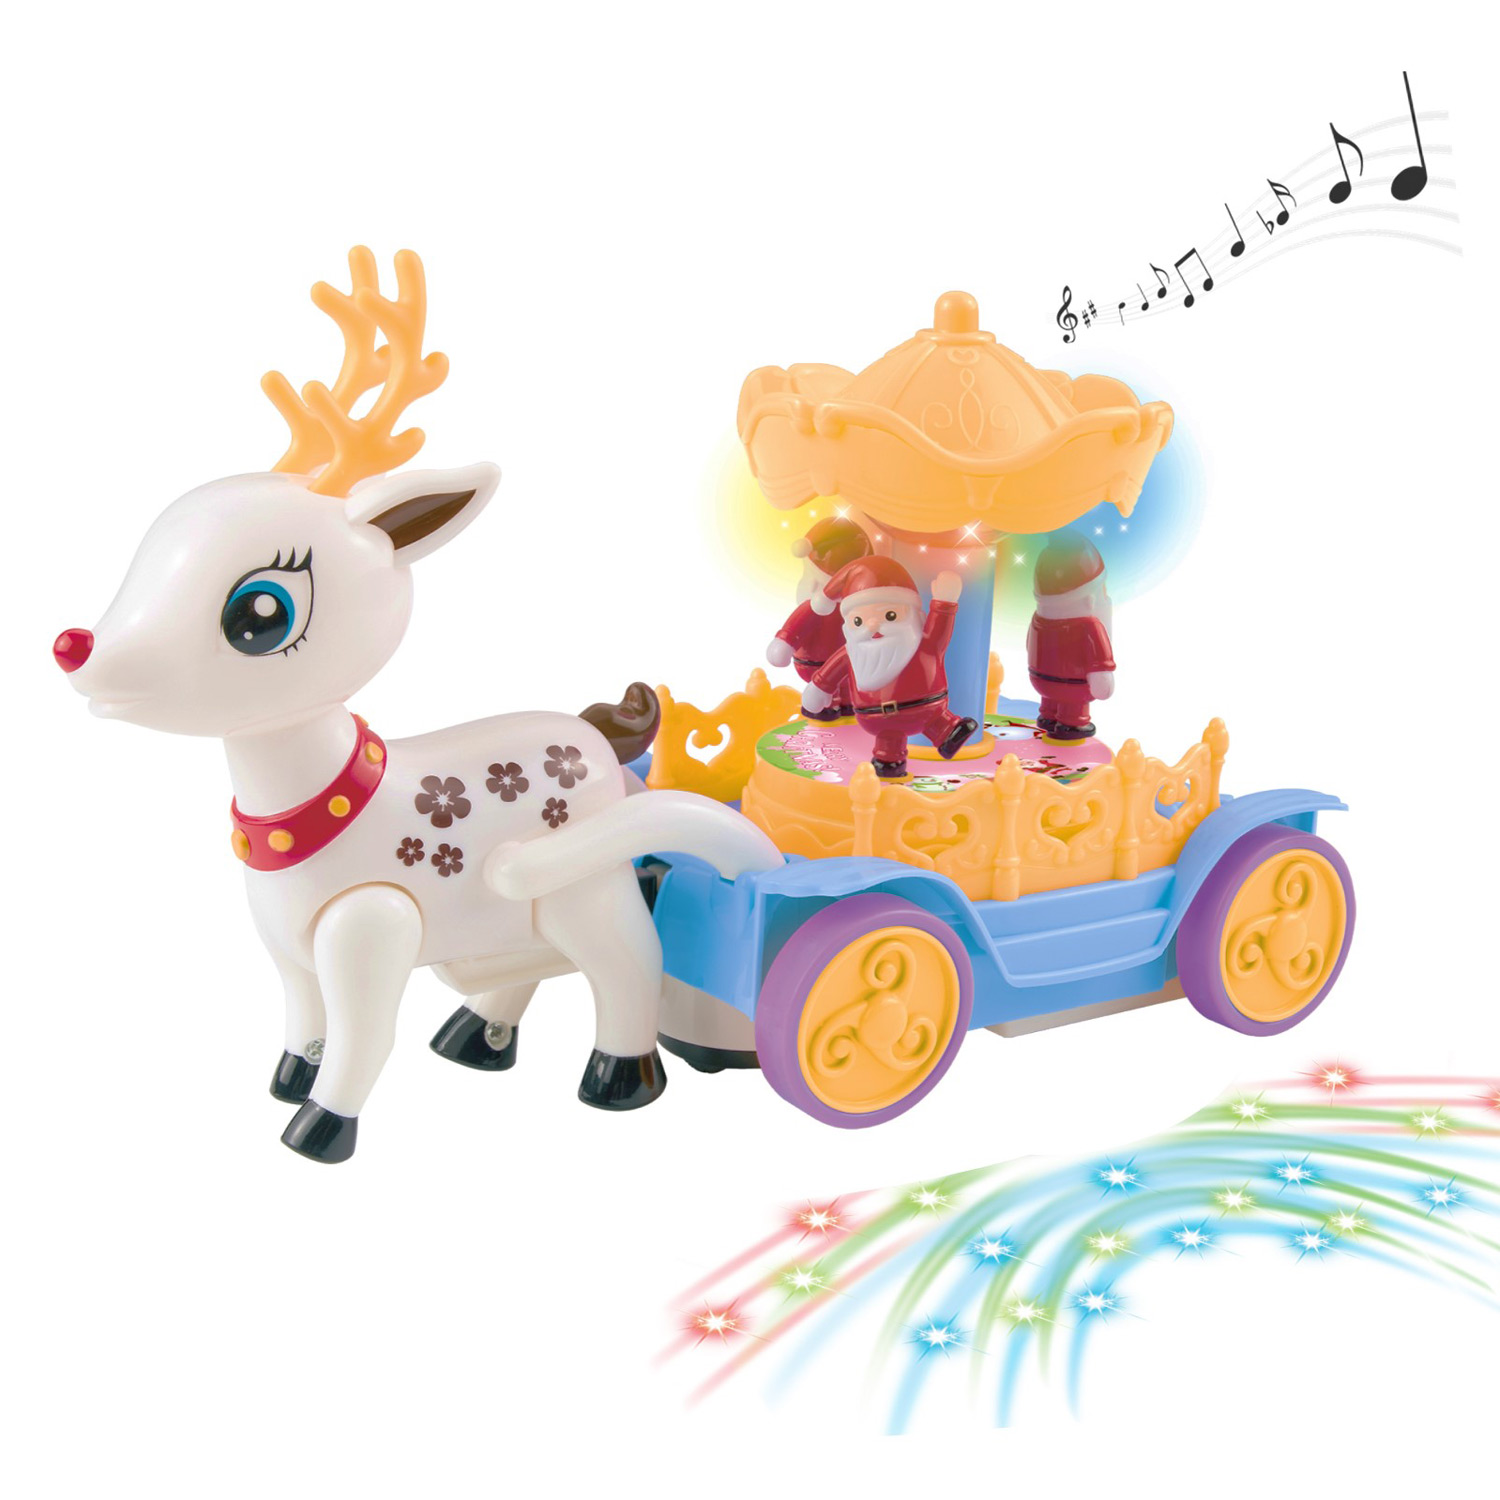 Beautiful Musical Walking Reindeer With Rotating Santa Claus Carousel Music Box Self Riding Deer Animal Lights And Sounds Bump And Go Action Great Toy Gift For Kids Little Boys Girls Children